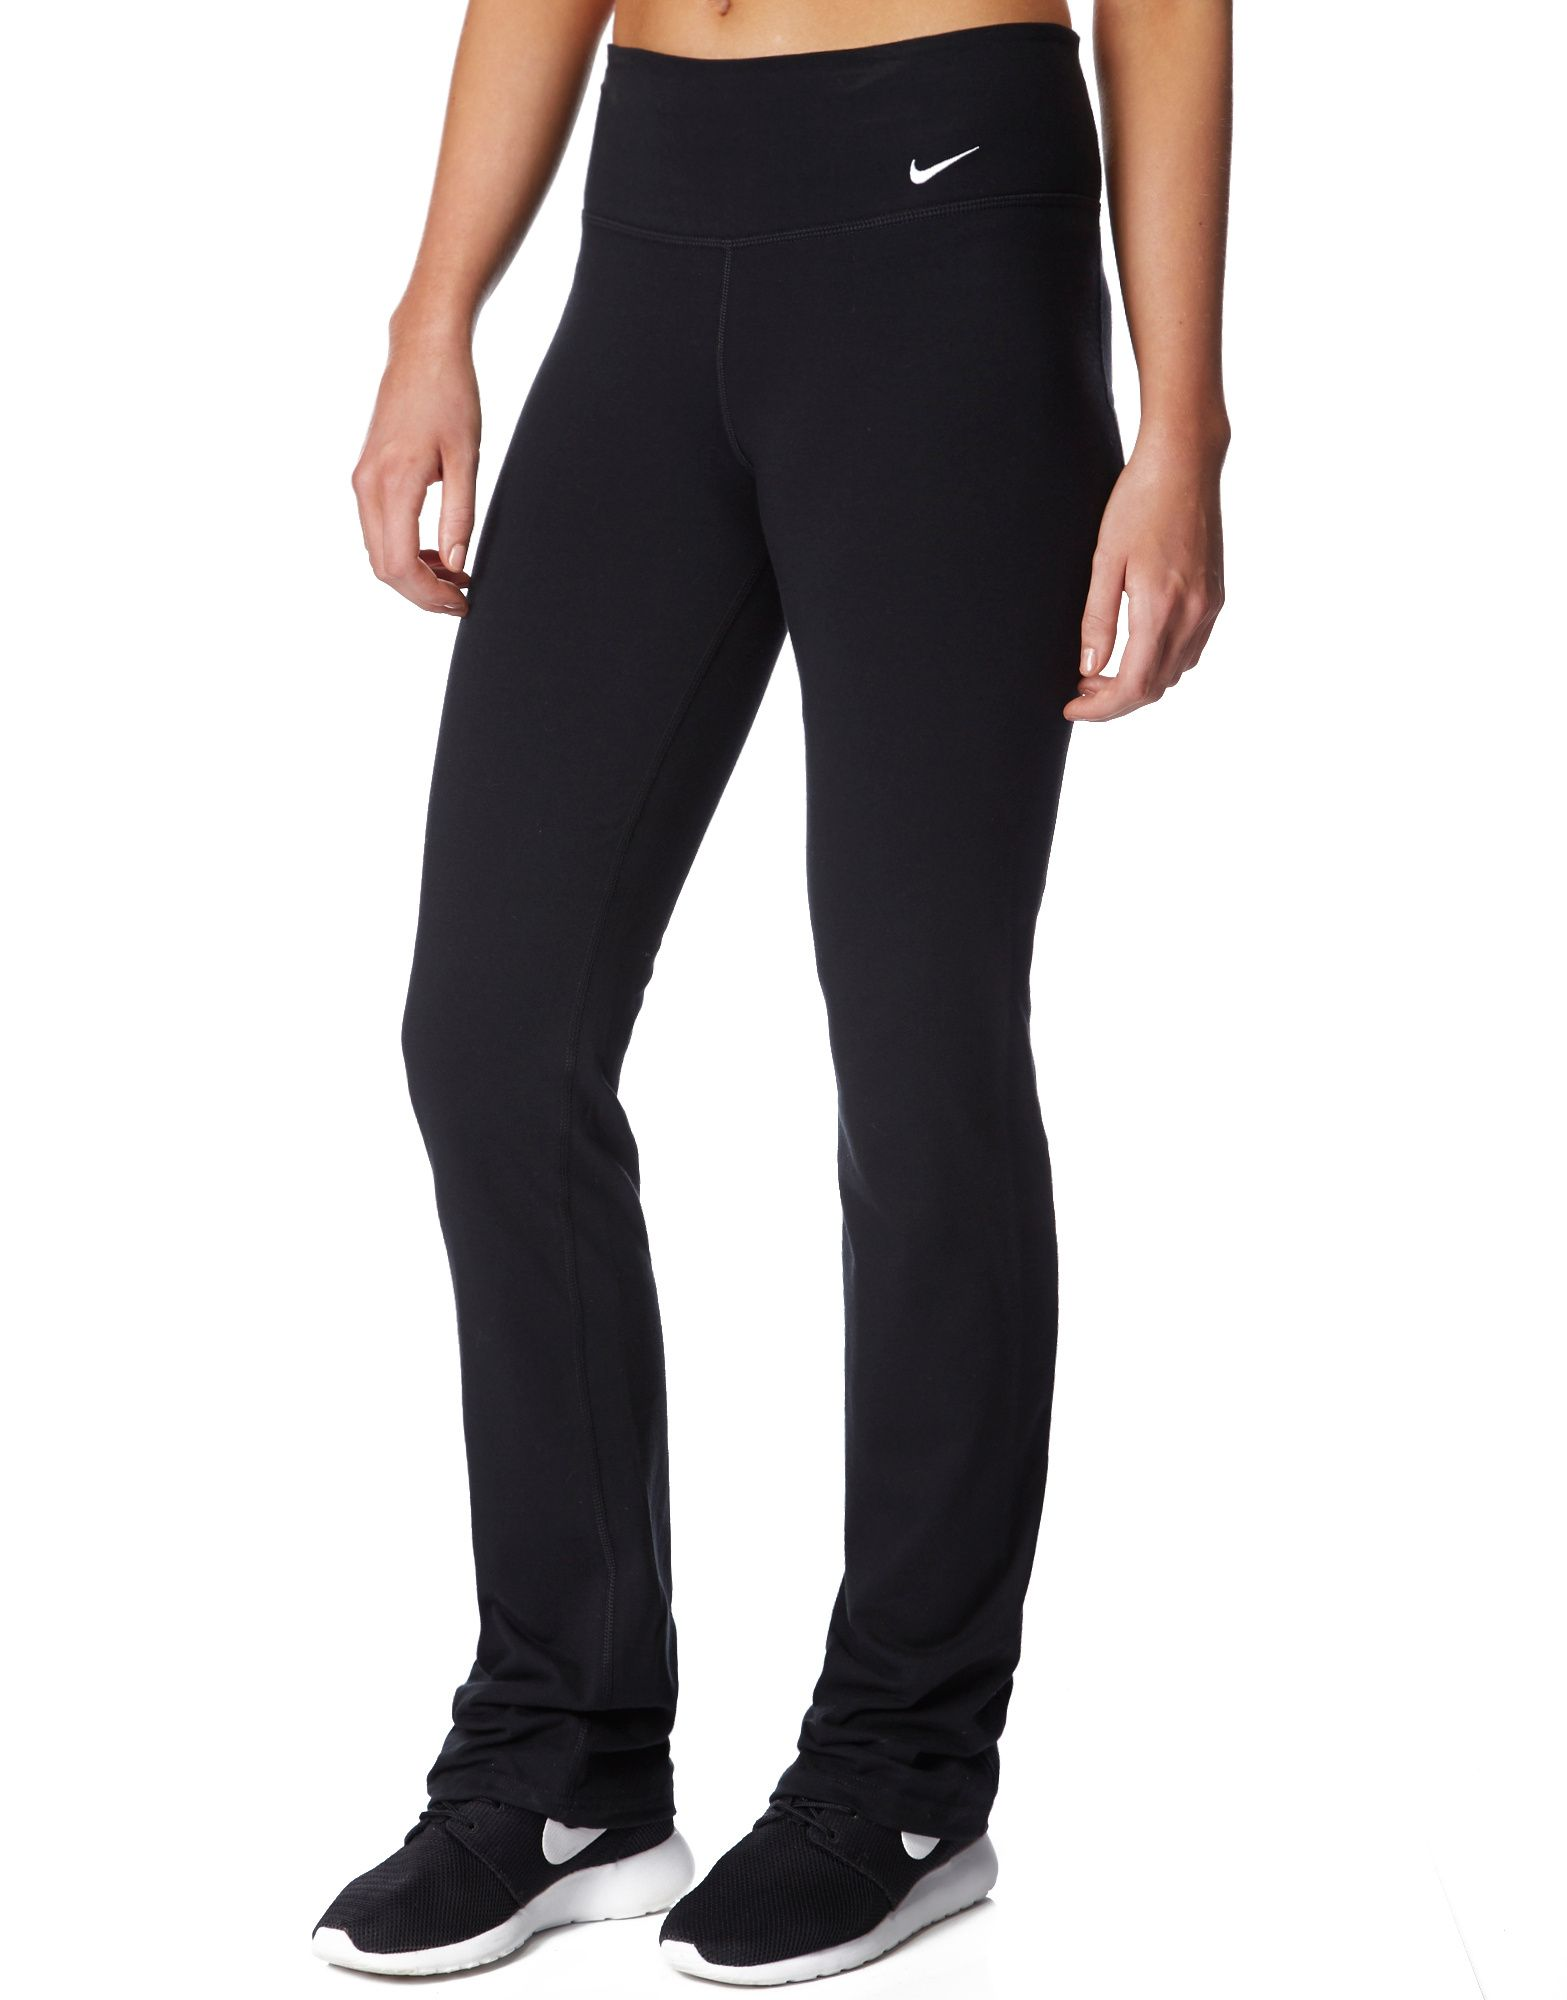 Excellent Take Your Pick From Slimfit Track Pants  It Will All Turn Out To Be A Good Investment For You Myntra Offers A Versatile Collection Of Nike Track Pants Online For Men As Well As Women Mix And Match To Discover New Combinations And